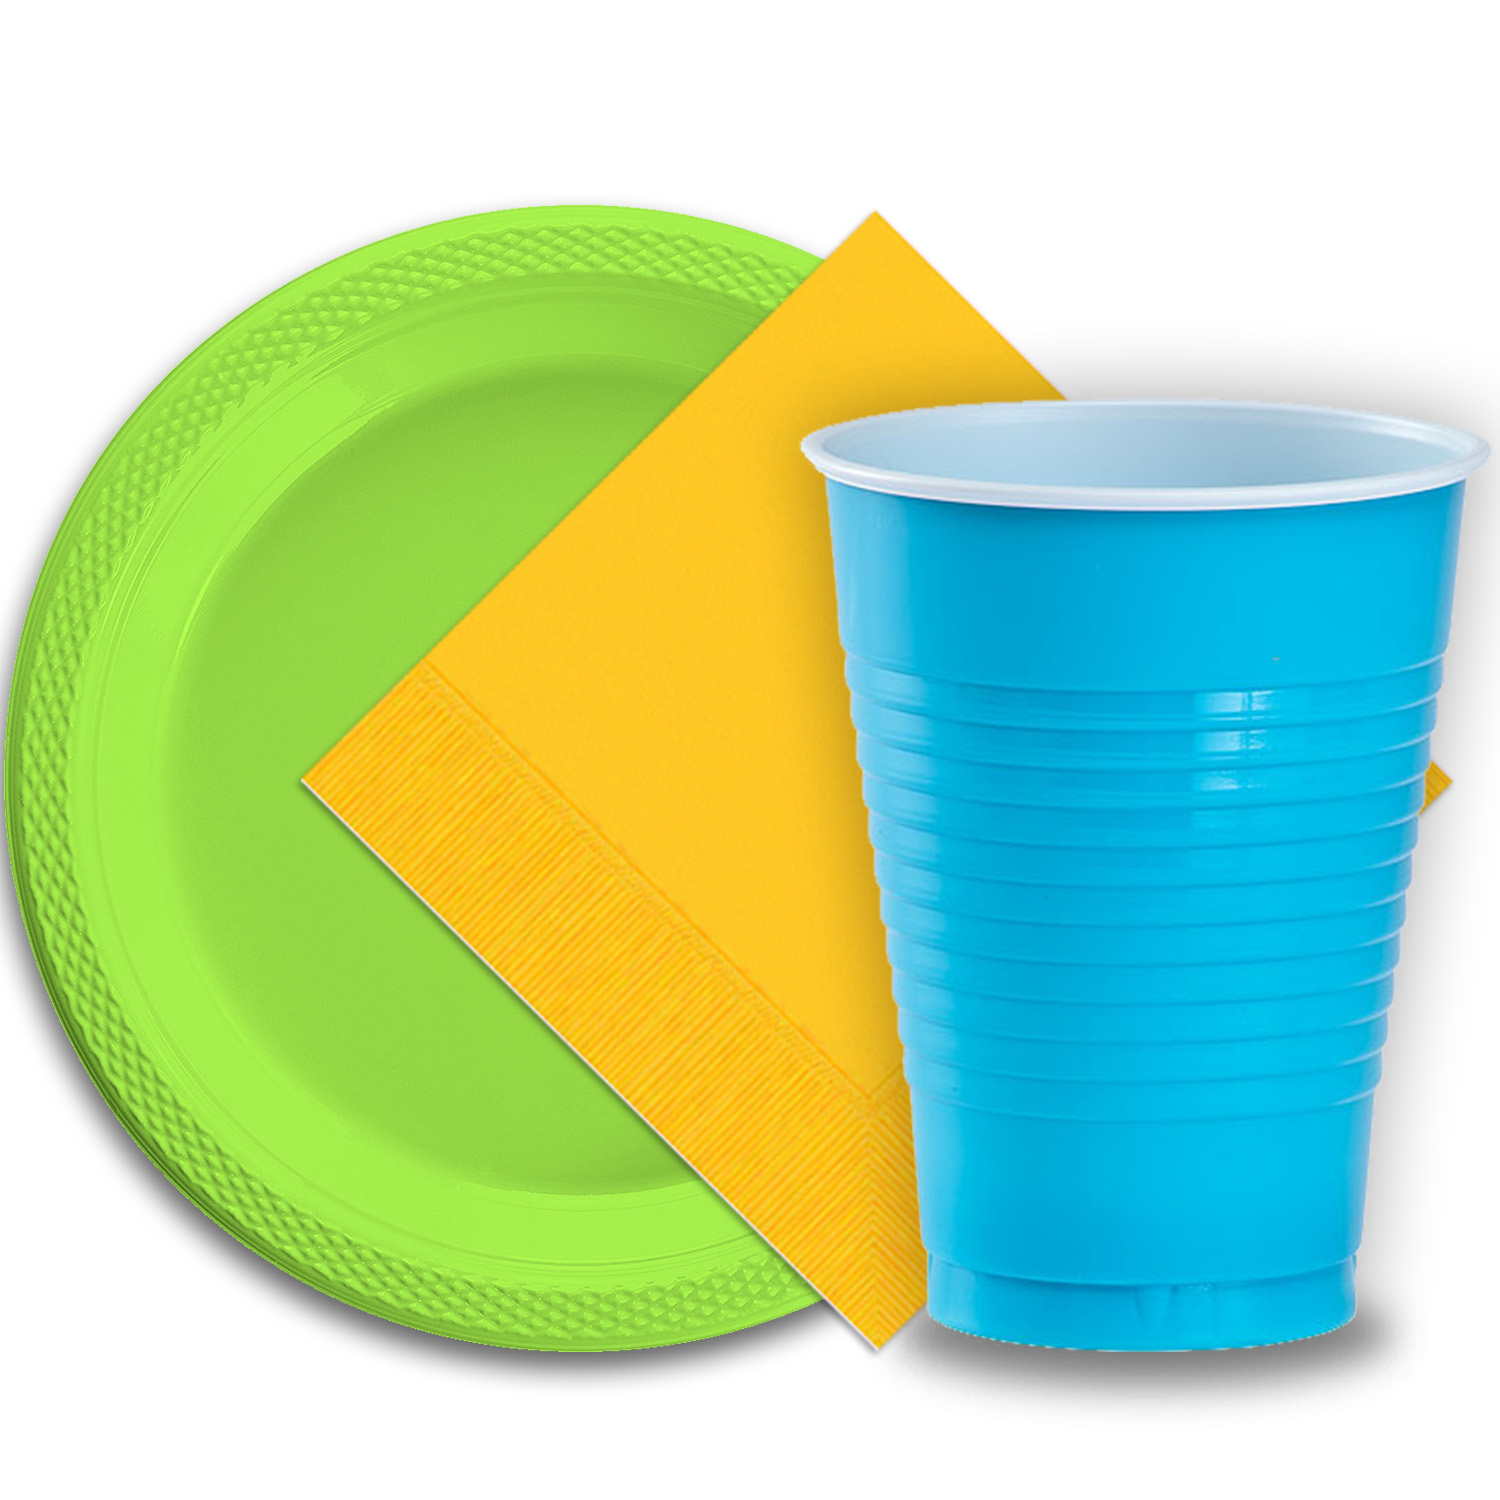 """50 Lime Green Plastic Plates (9""""), 50 Aqua Plastic Cups (12 oz.), and 50 Yellow Paper Napkins, Dazzelling Colored Disposable Party Supplies Tableware Set for Fifty Guests."""